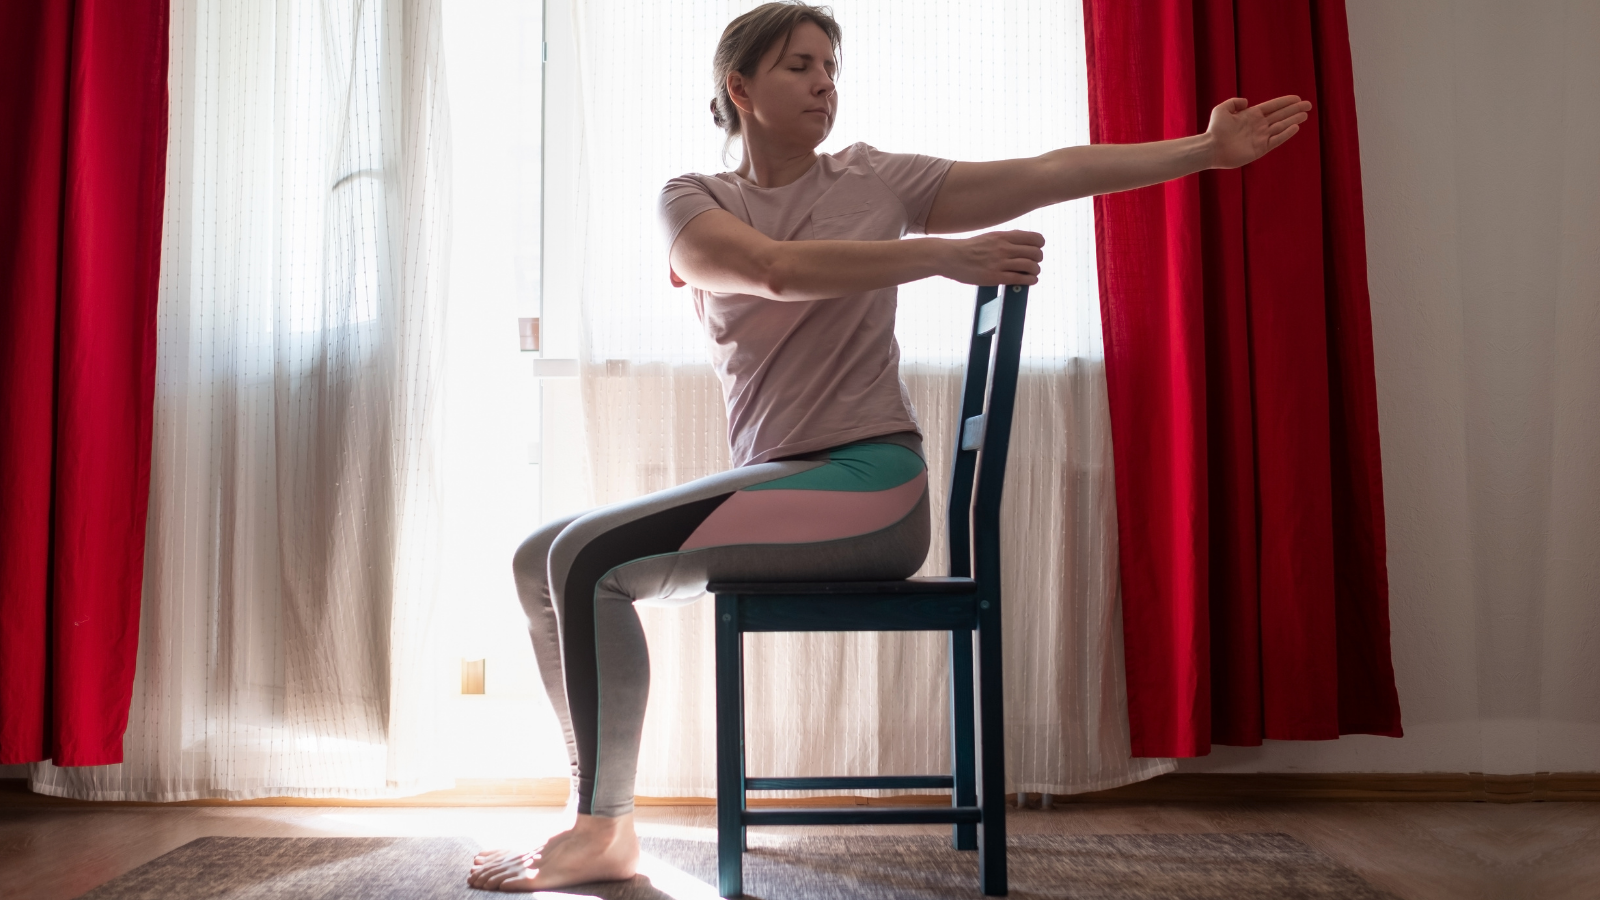 Beginner yoga tips to practice Seated Twist pose to boost energy without caffeine